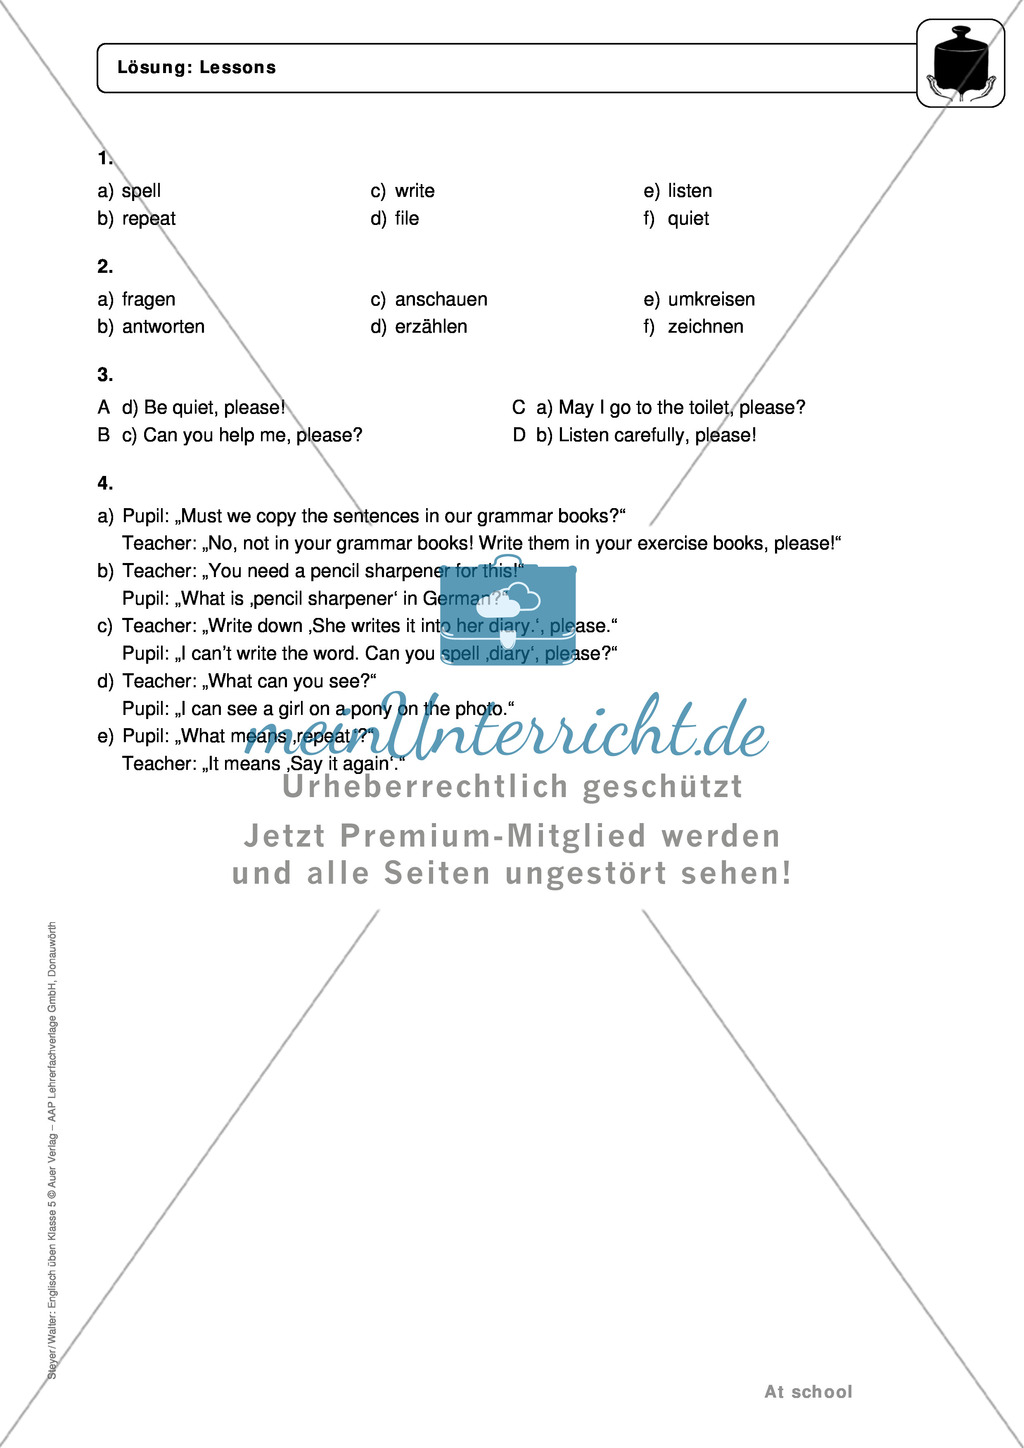 At school: lessons and classroom phrases - Exercises + Lösungen Preview 4